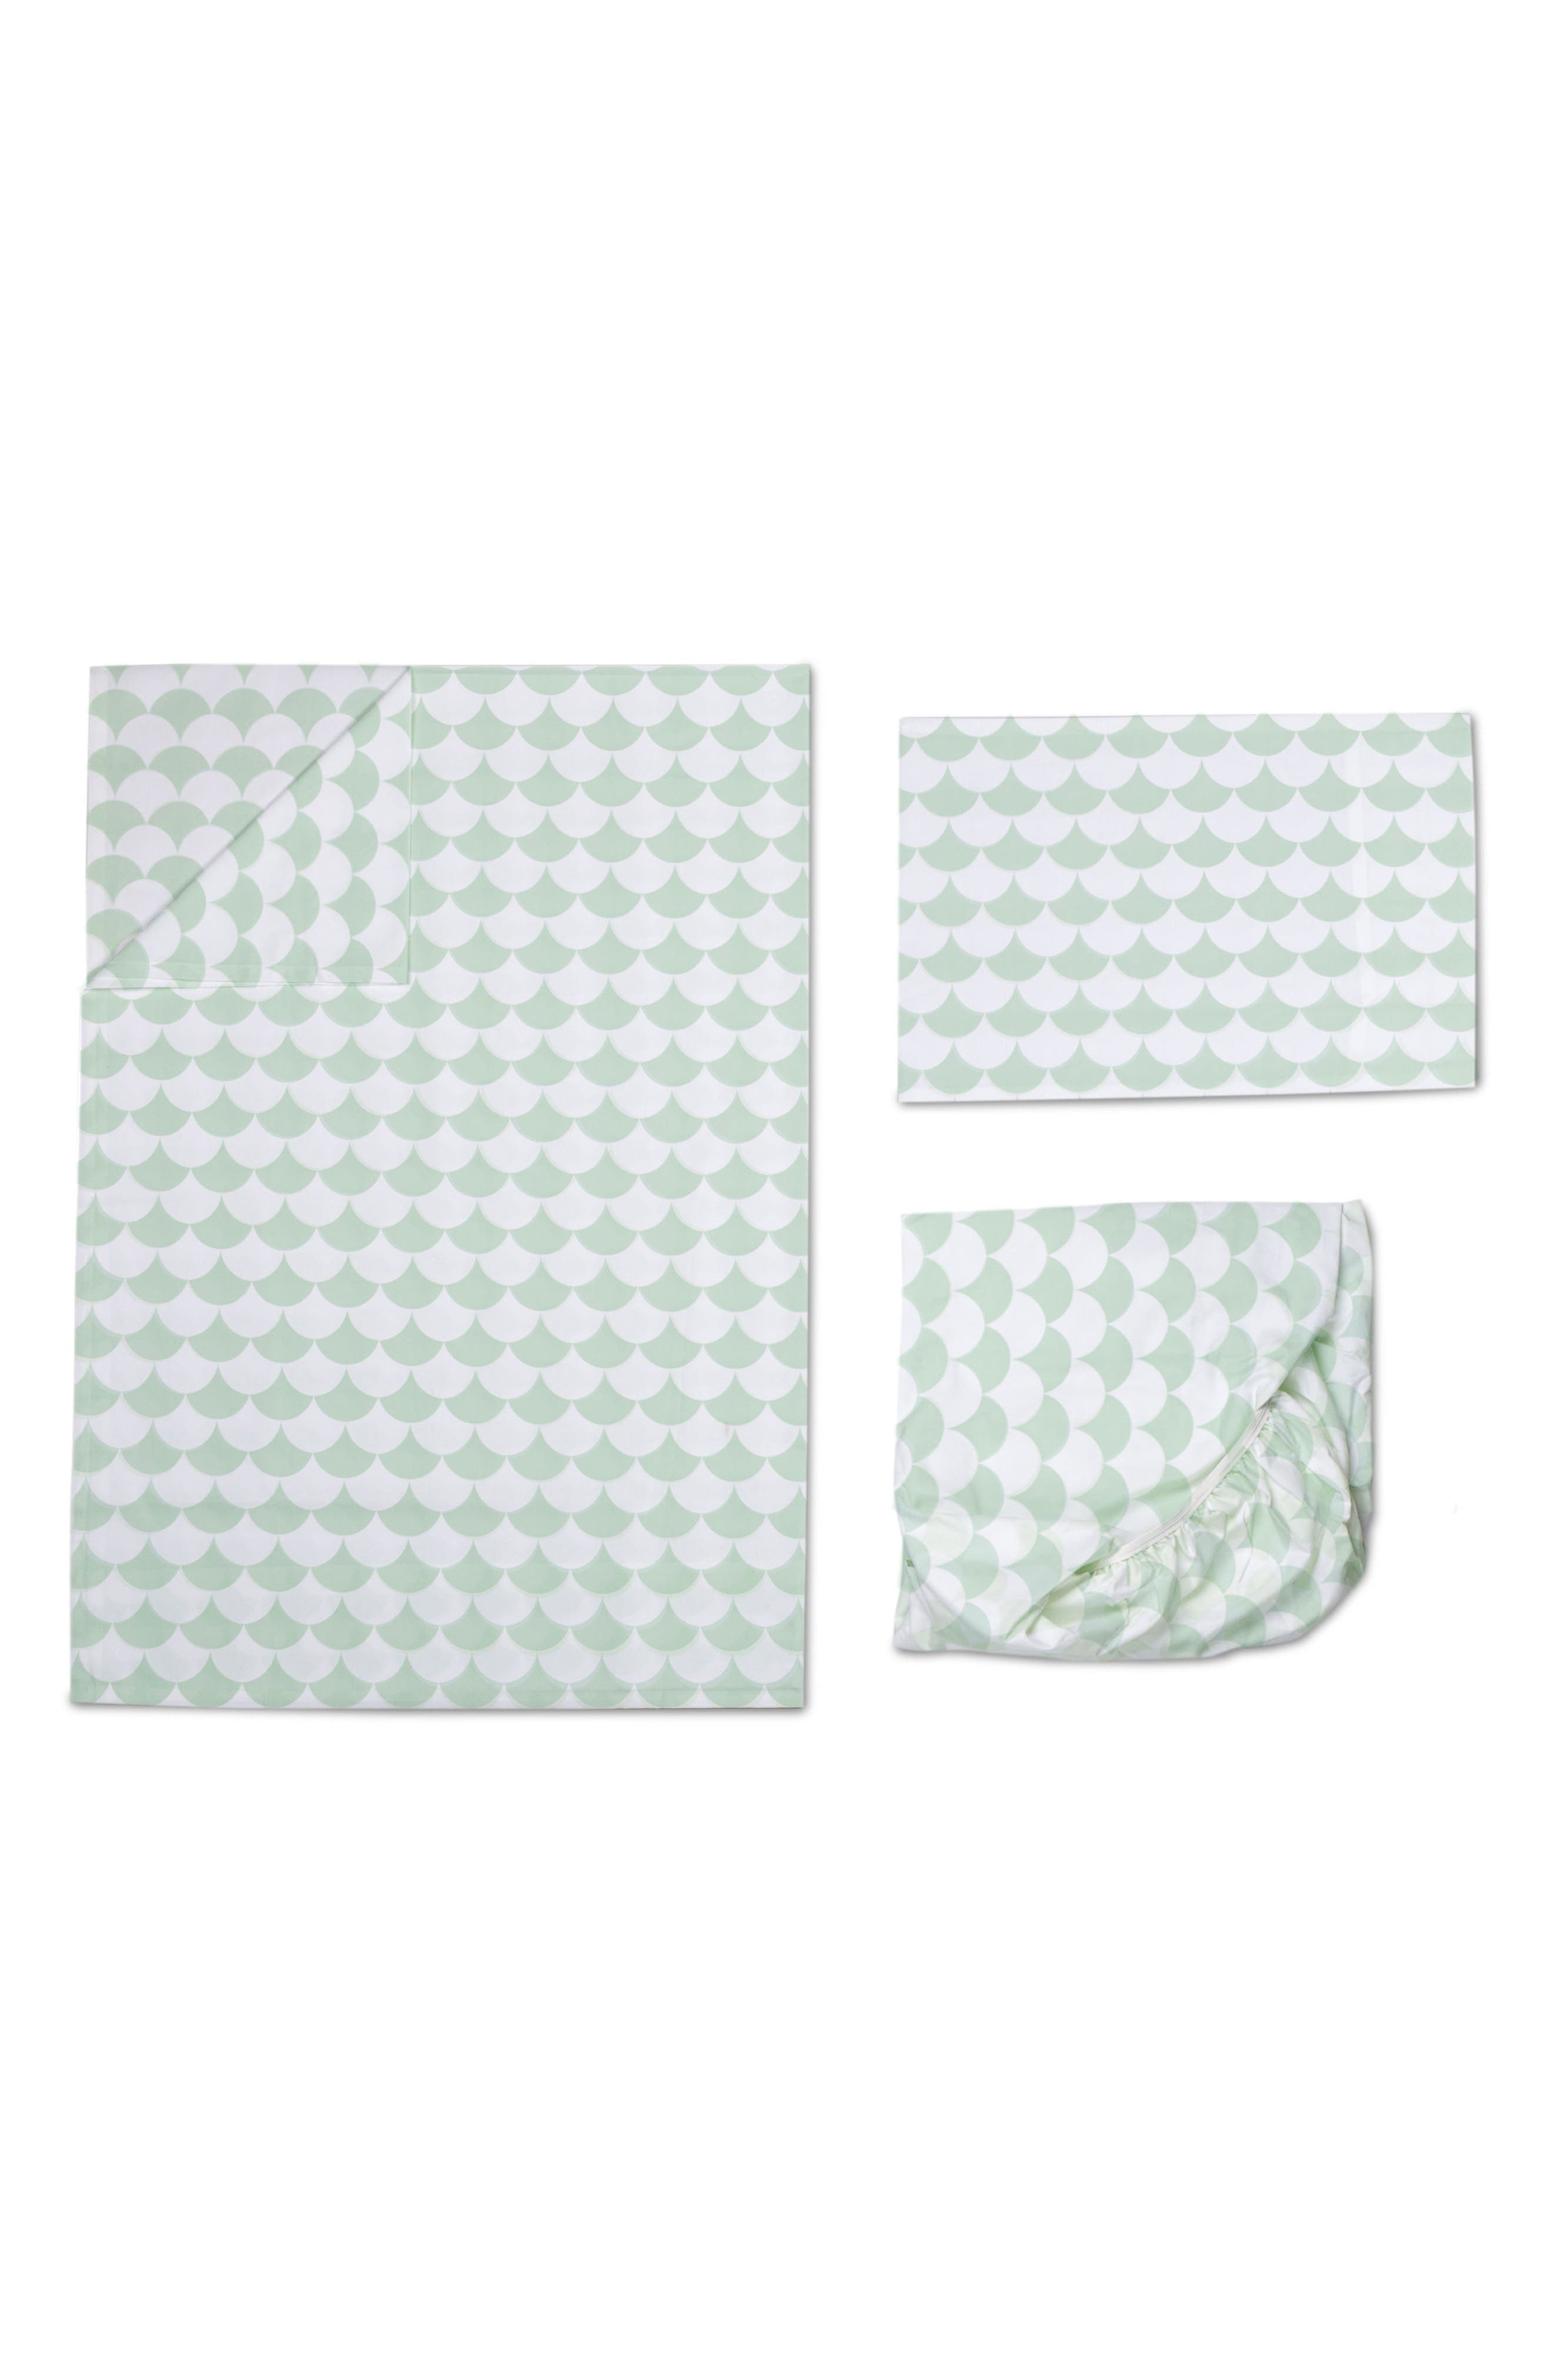 200 Thread Count Toddler Sheet Set,                             Main thumbnail 1, color,                             Sea Glass Green Scallops